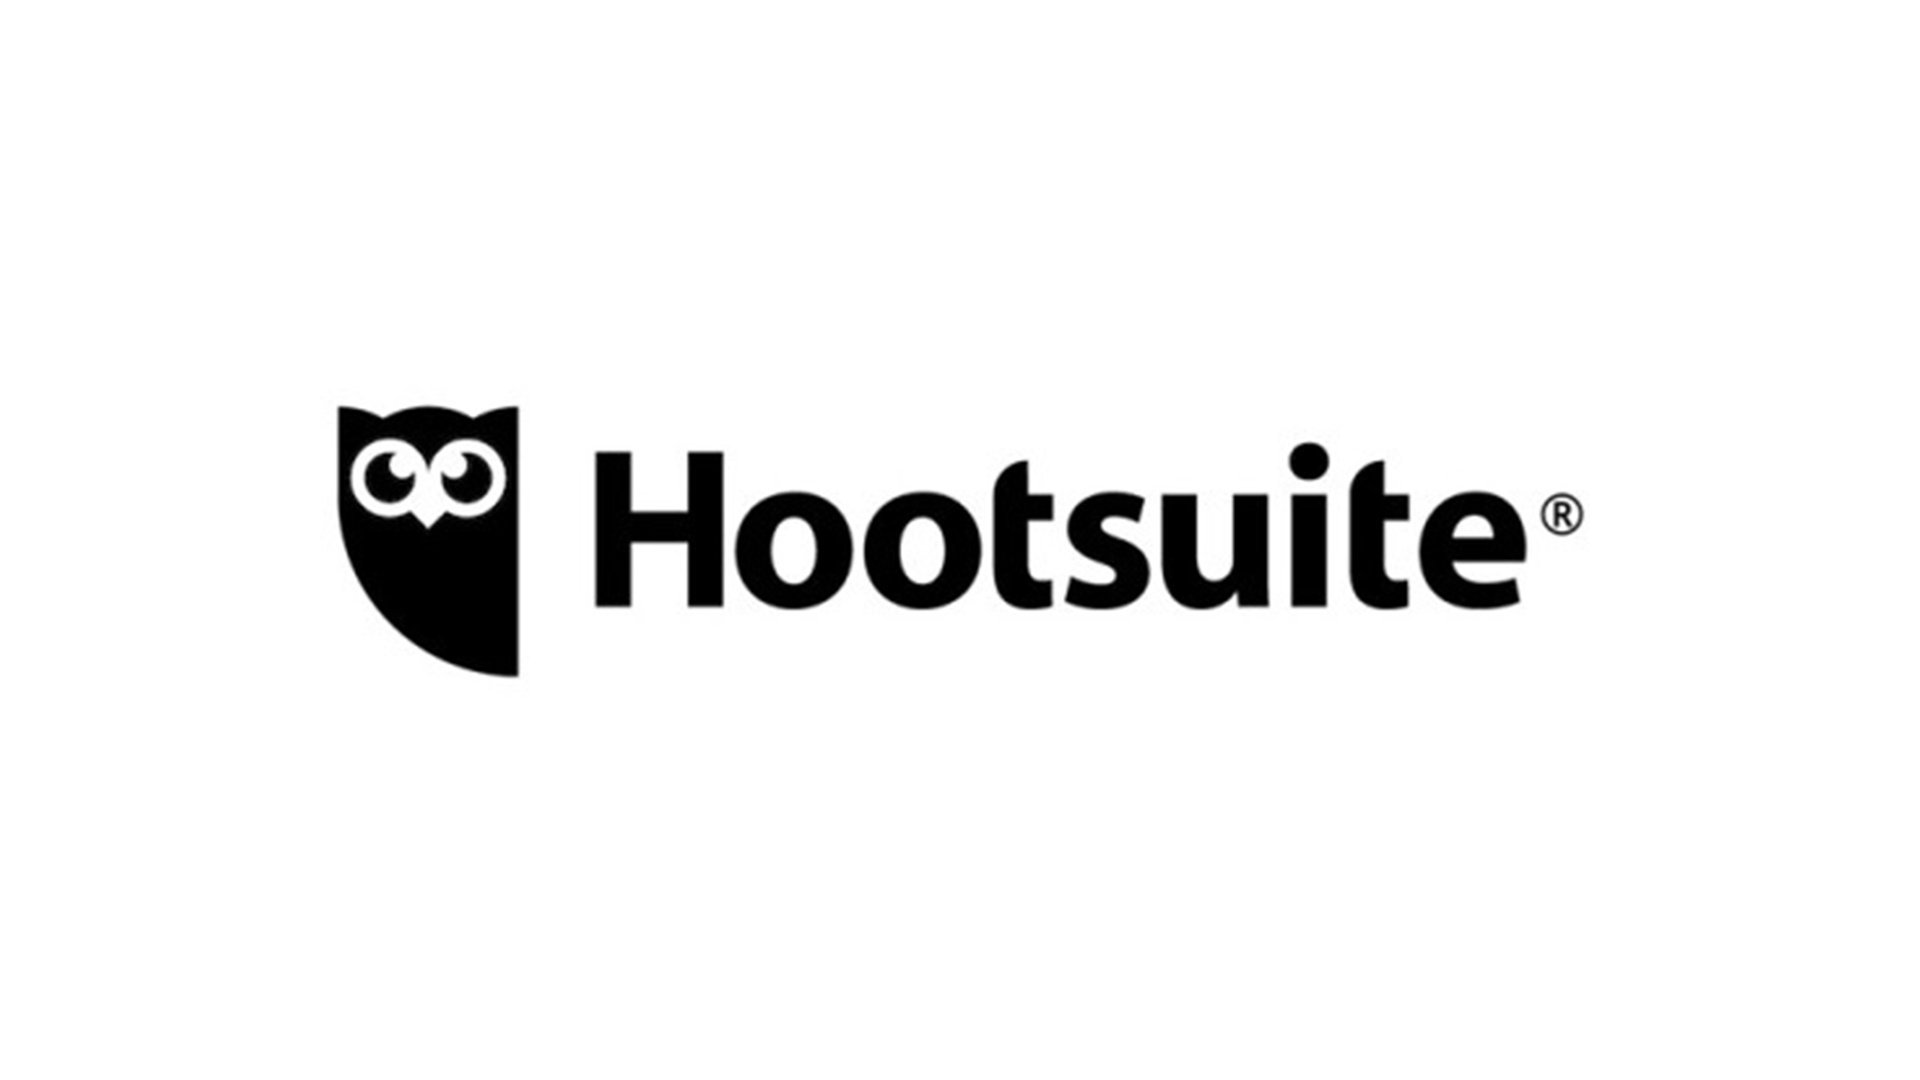 Content Marketing All-Stars Q&A: Eva Taylor of Hootsuite